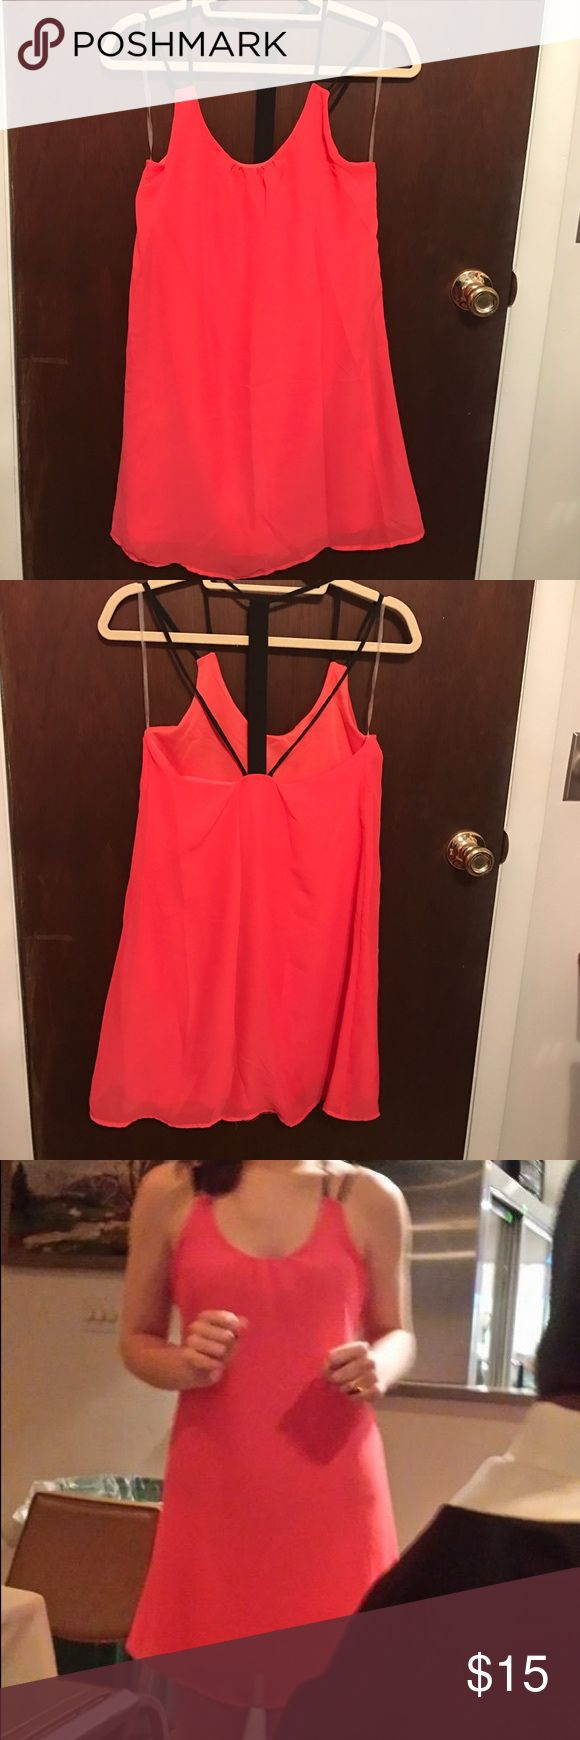 Coral Sundress Coral sundress perfect for a Florida vacation! Worn to a beach wedding. Paired nicely with black/cork wedges. Charlotte Russe Dresses Mini